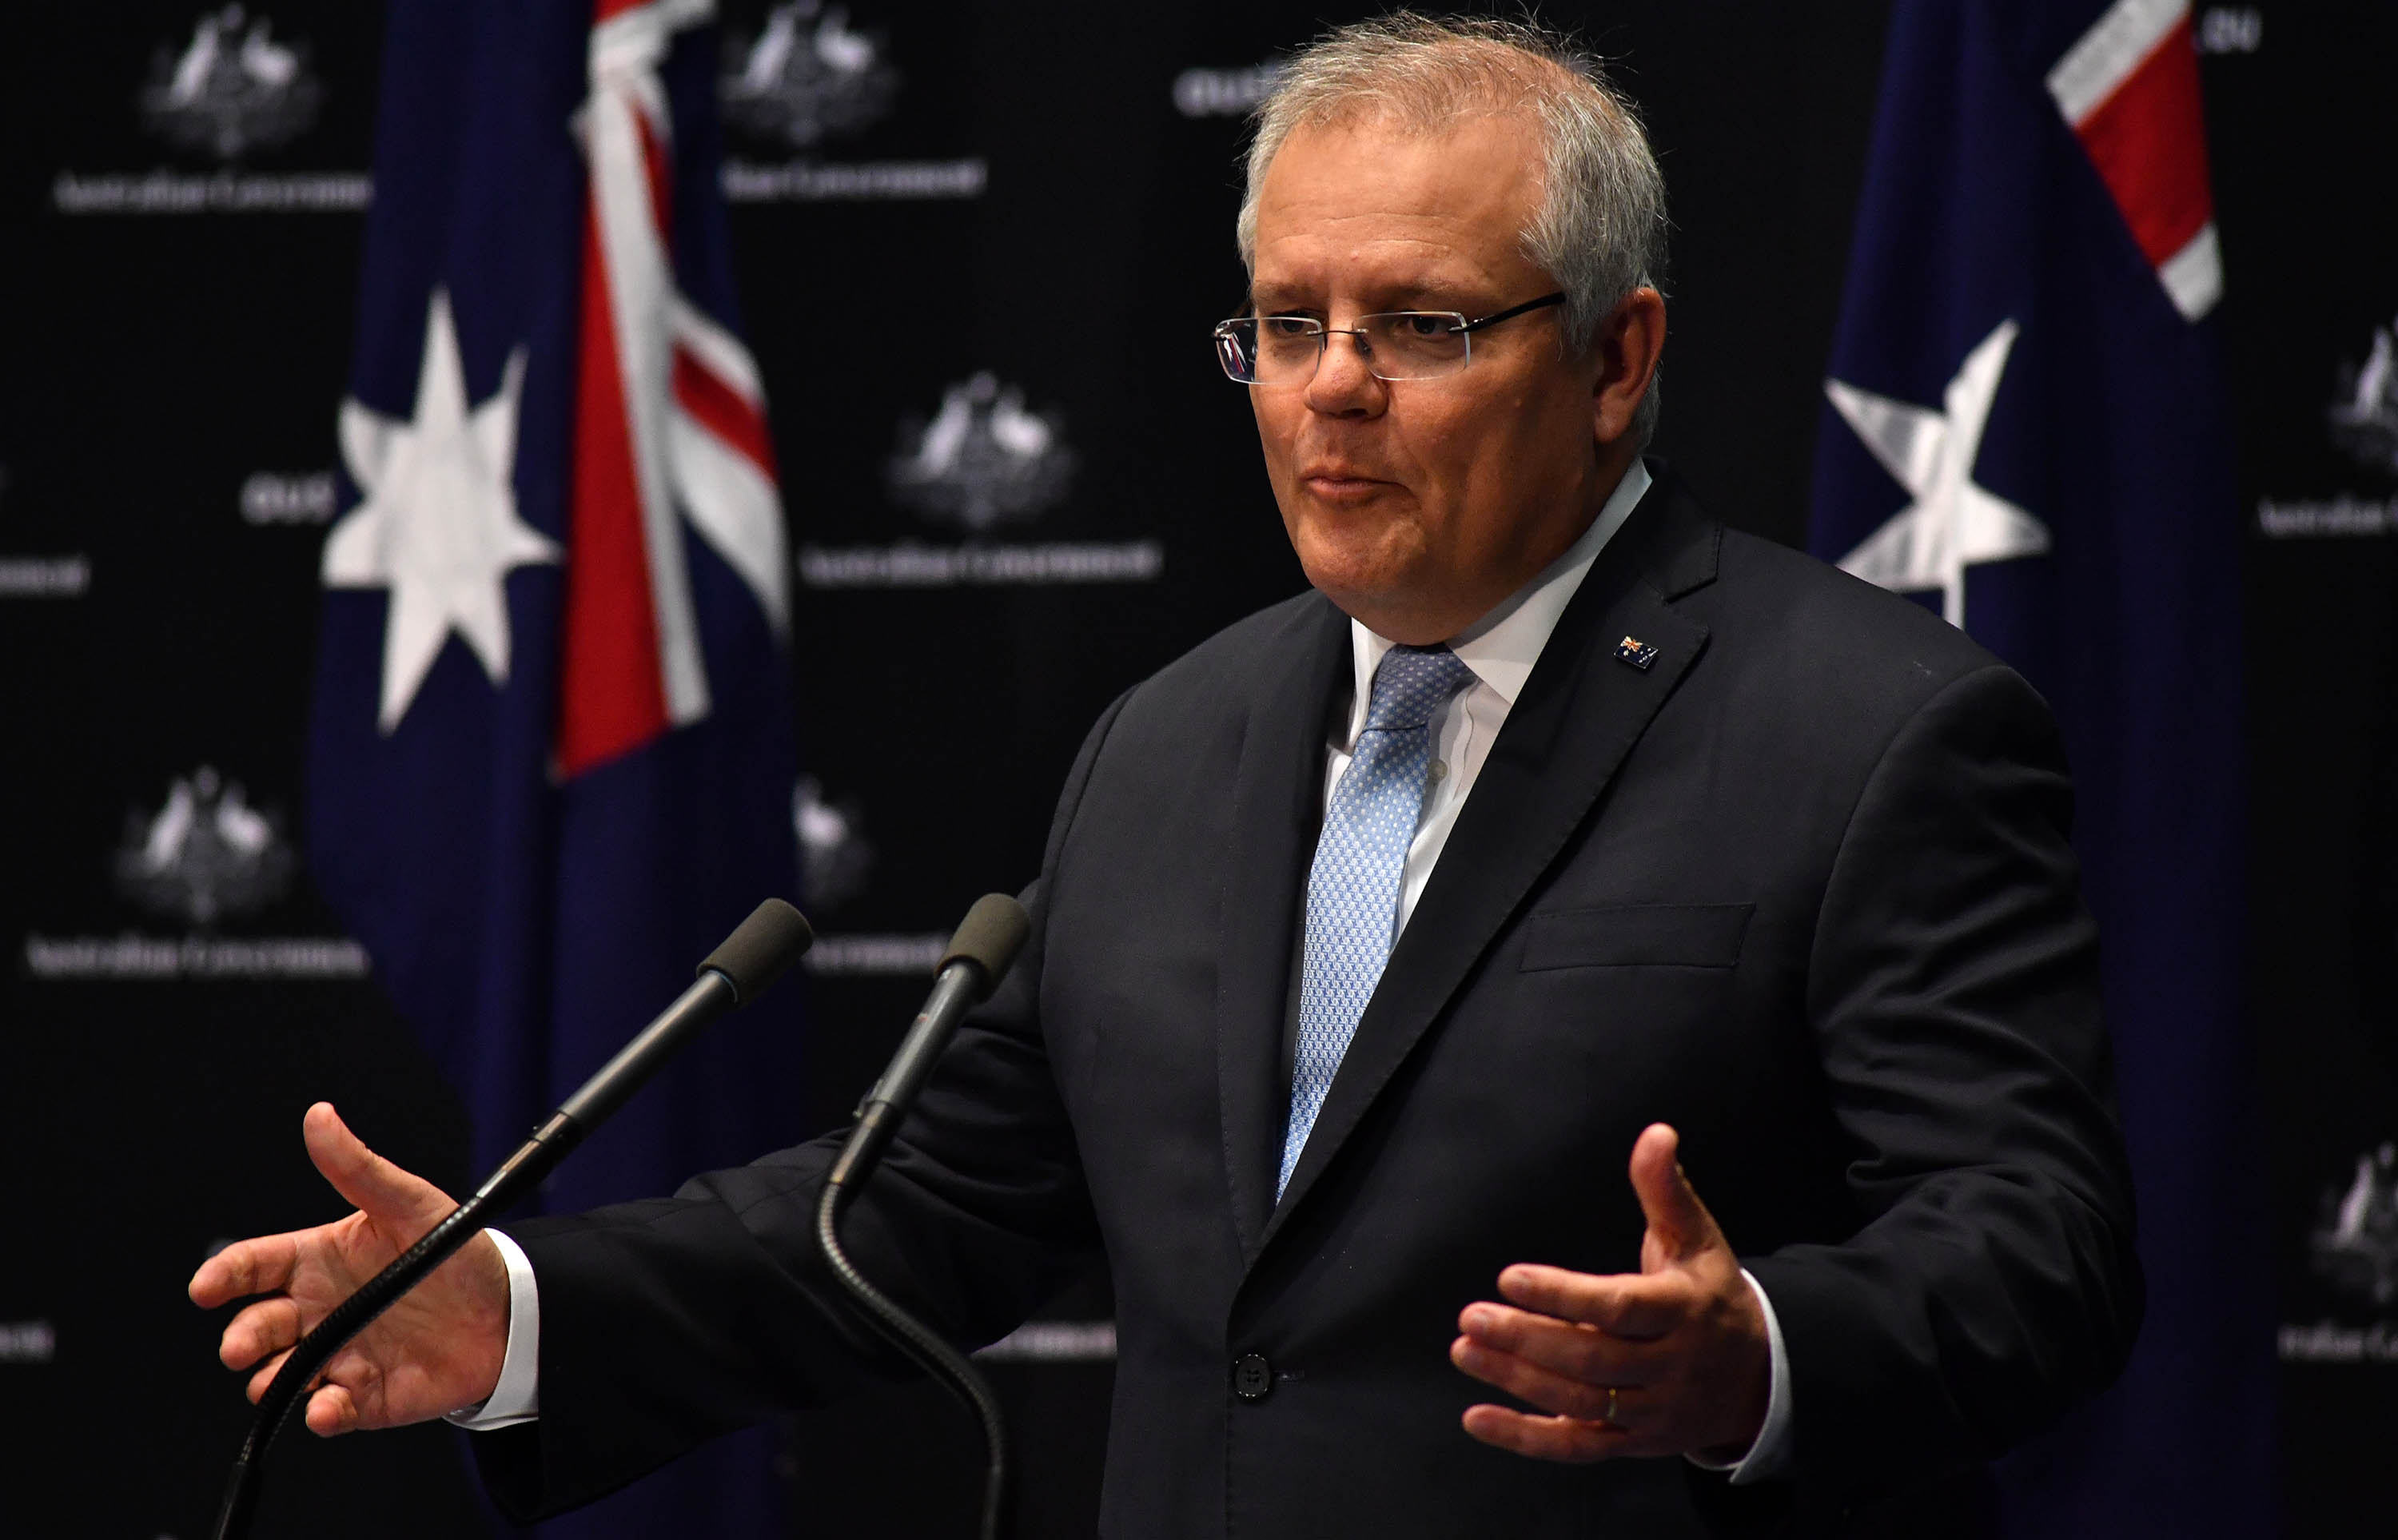 Australian Prime Minister Scott Morrison speaks during a press conference at Parliament House in Canberra, Australia, on June 12.